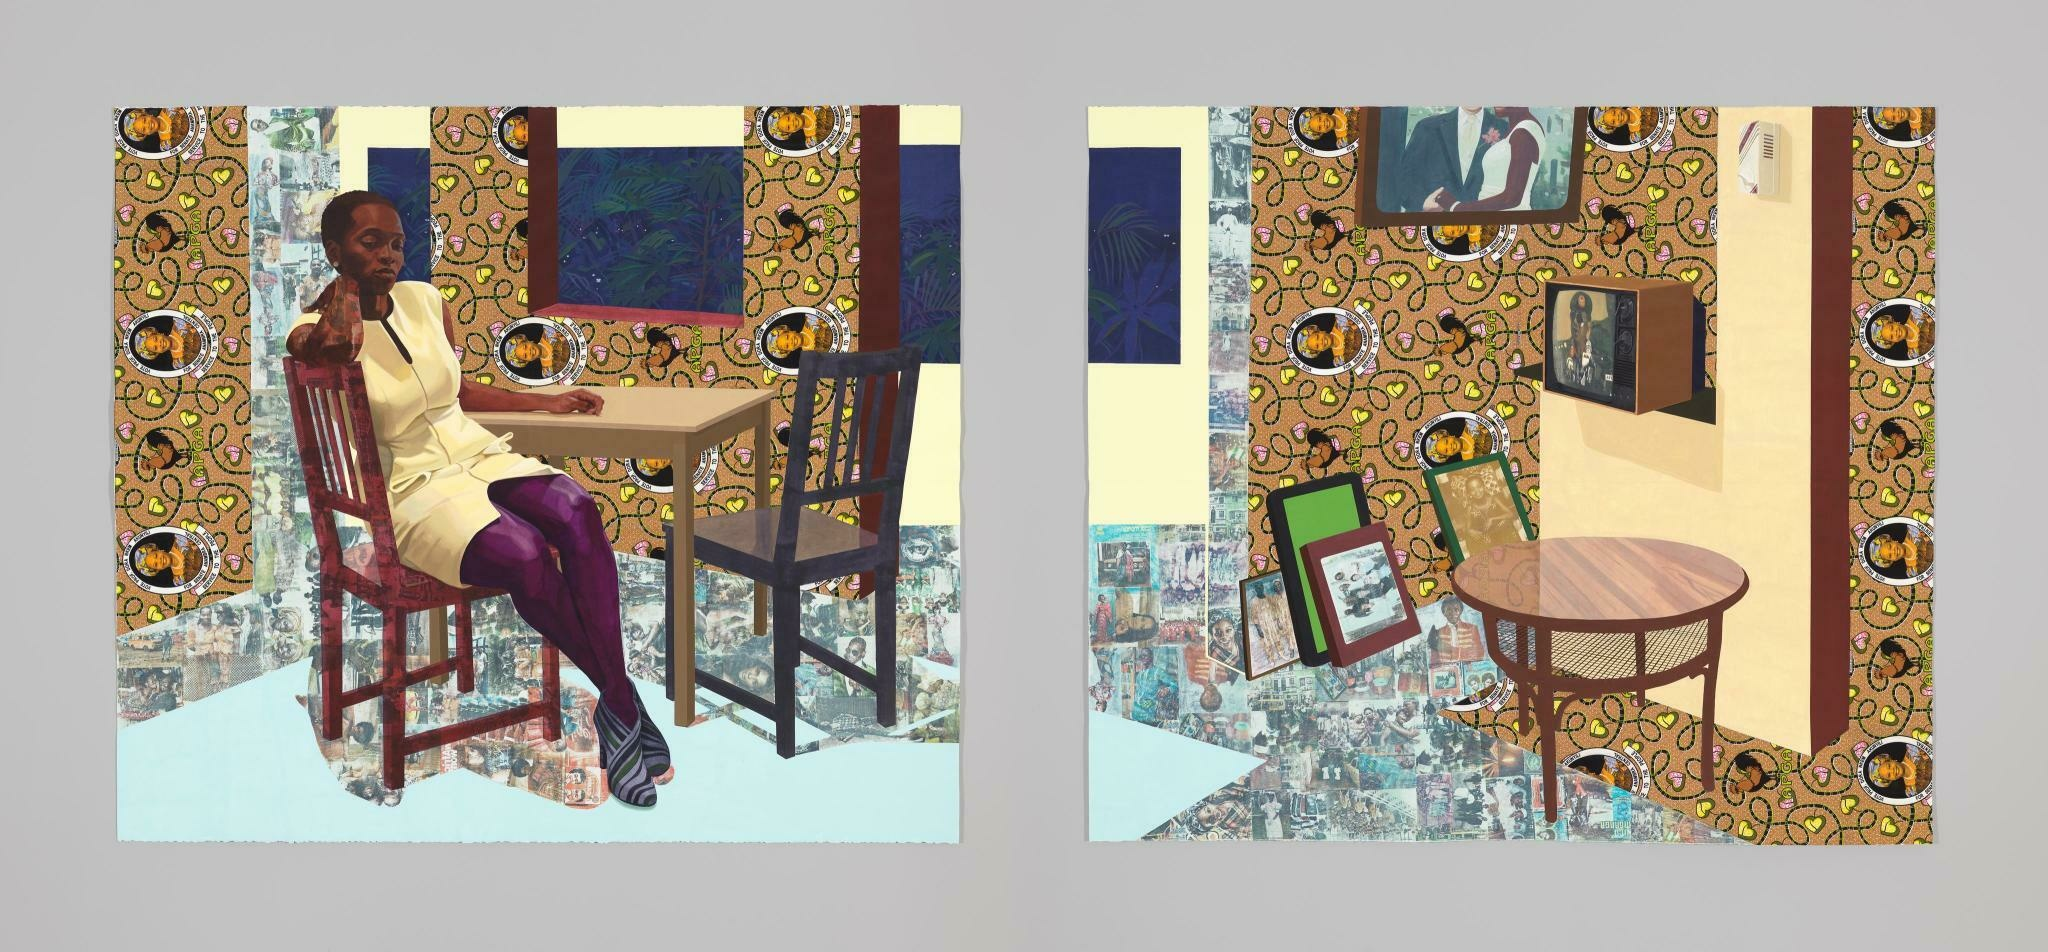 In a room extending across a diptych, a pensive Black woman sits at a table surrounded by pattered surfaces.